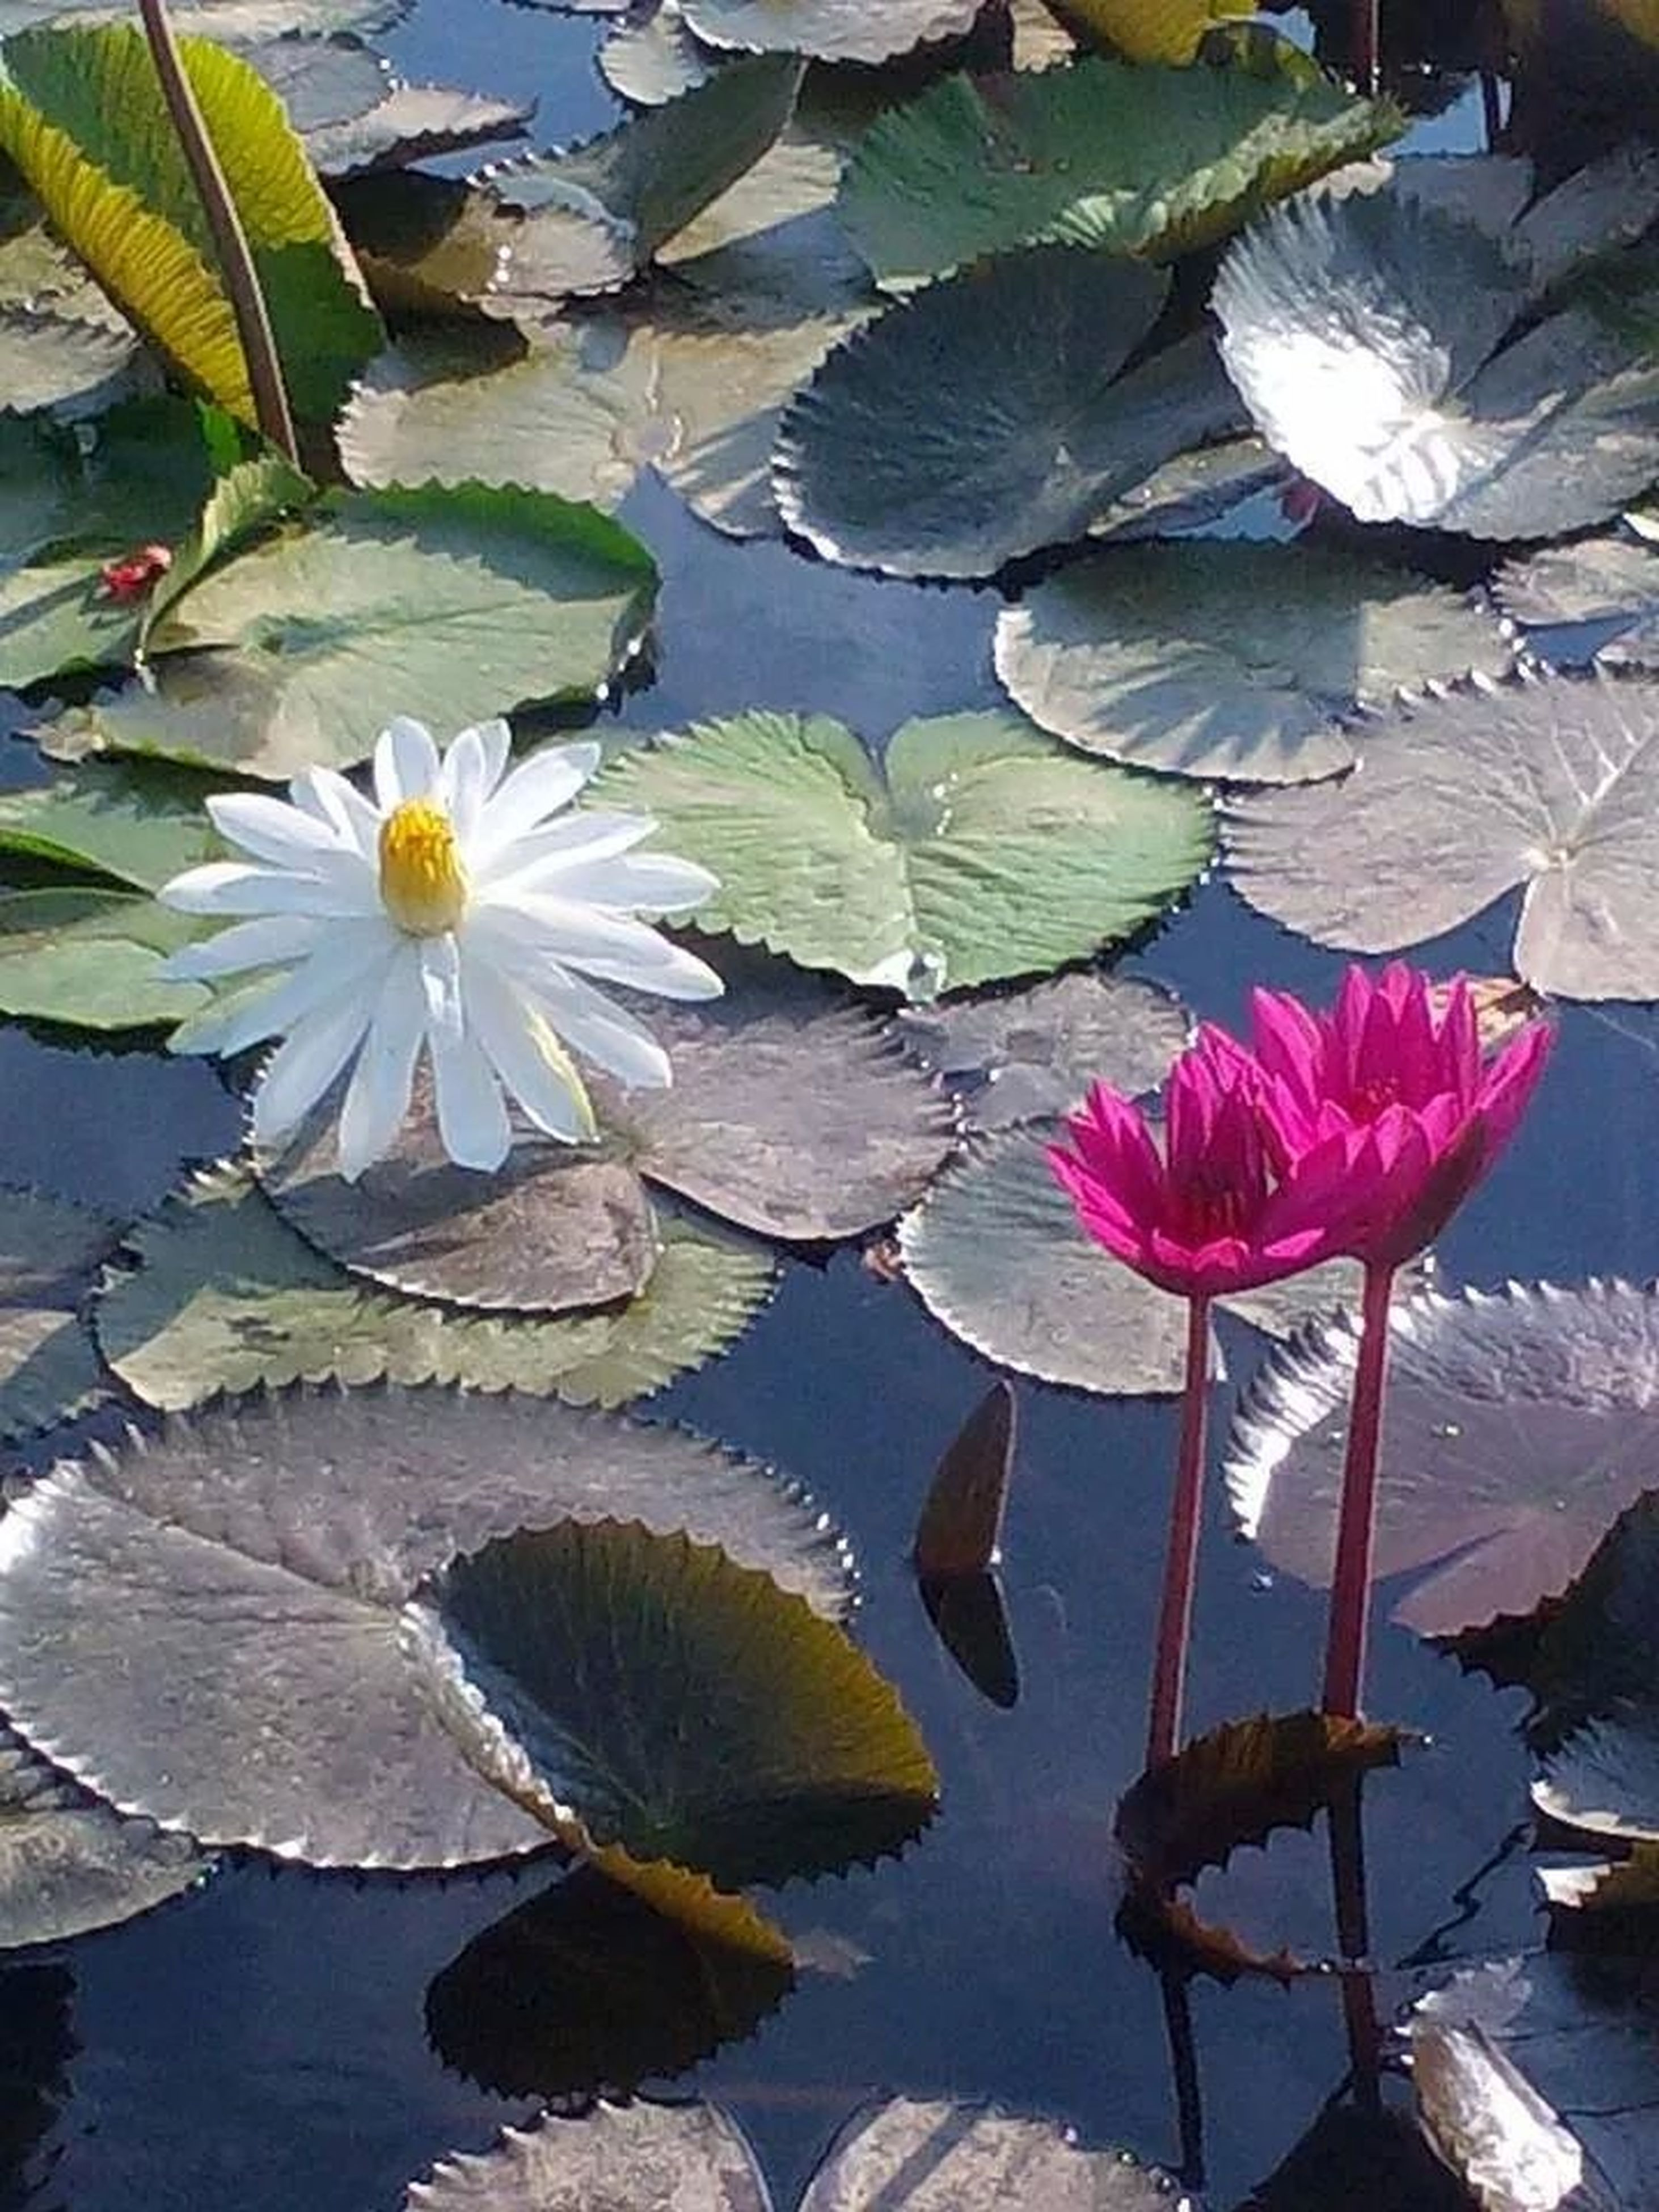 water lily, flower, petal, leaf, pond, lotus water lily, water, floating on water, fragility, freshness, flower head, beauty in nature, high angle view, nature, growth, lake, plant, reflection, lily pad, blooming